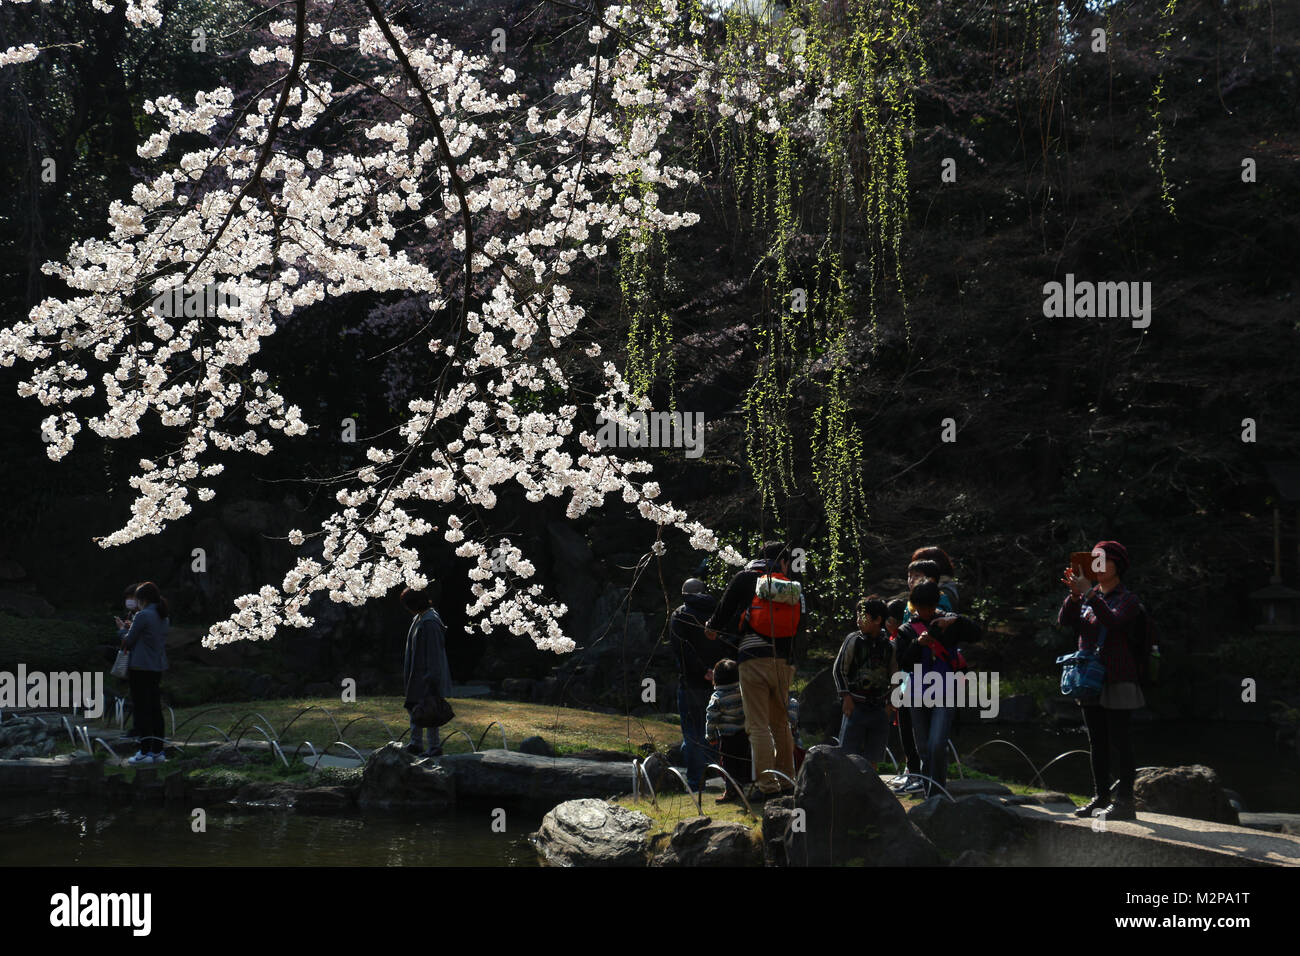 Yasukuni Shrine garden,Tokyo,Japan, has trees where the first cherry blossoms in Tokyo open; crowds flock to see - Stock Image